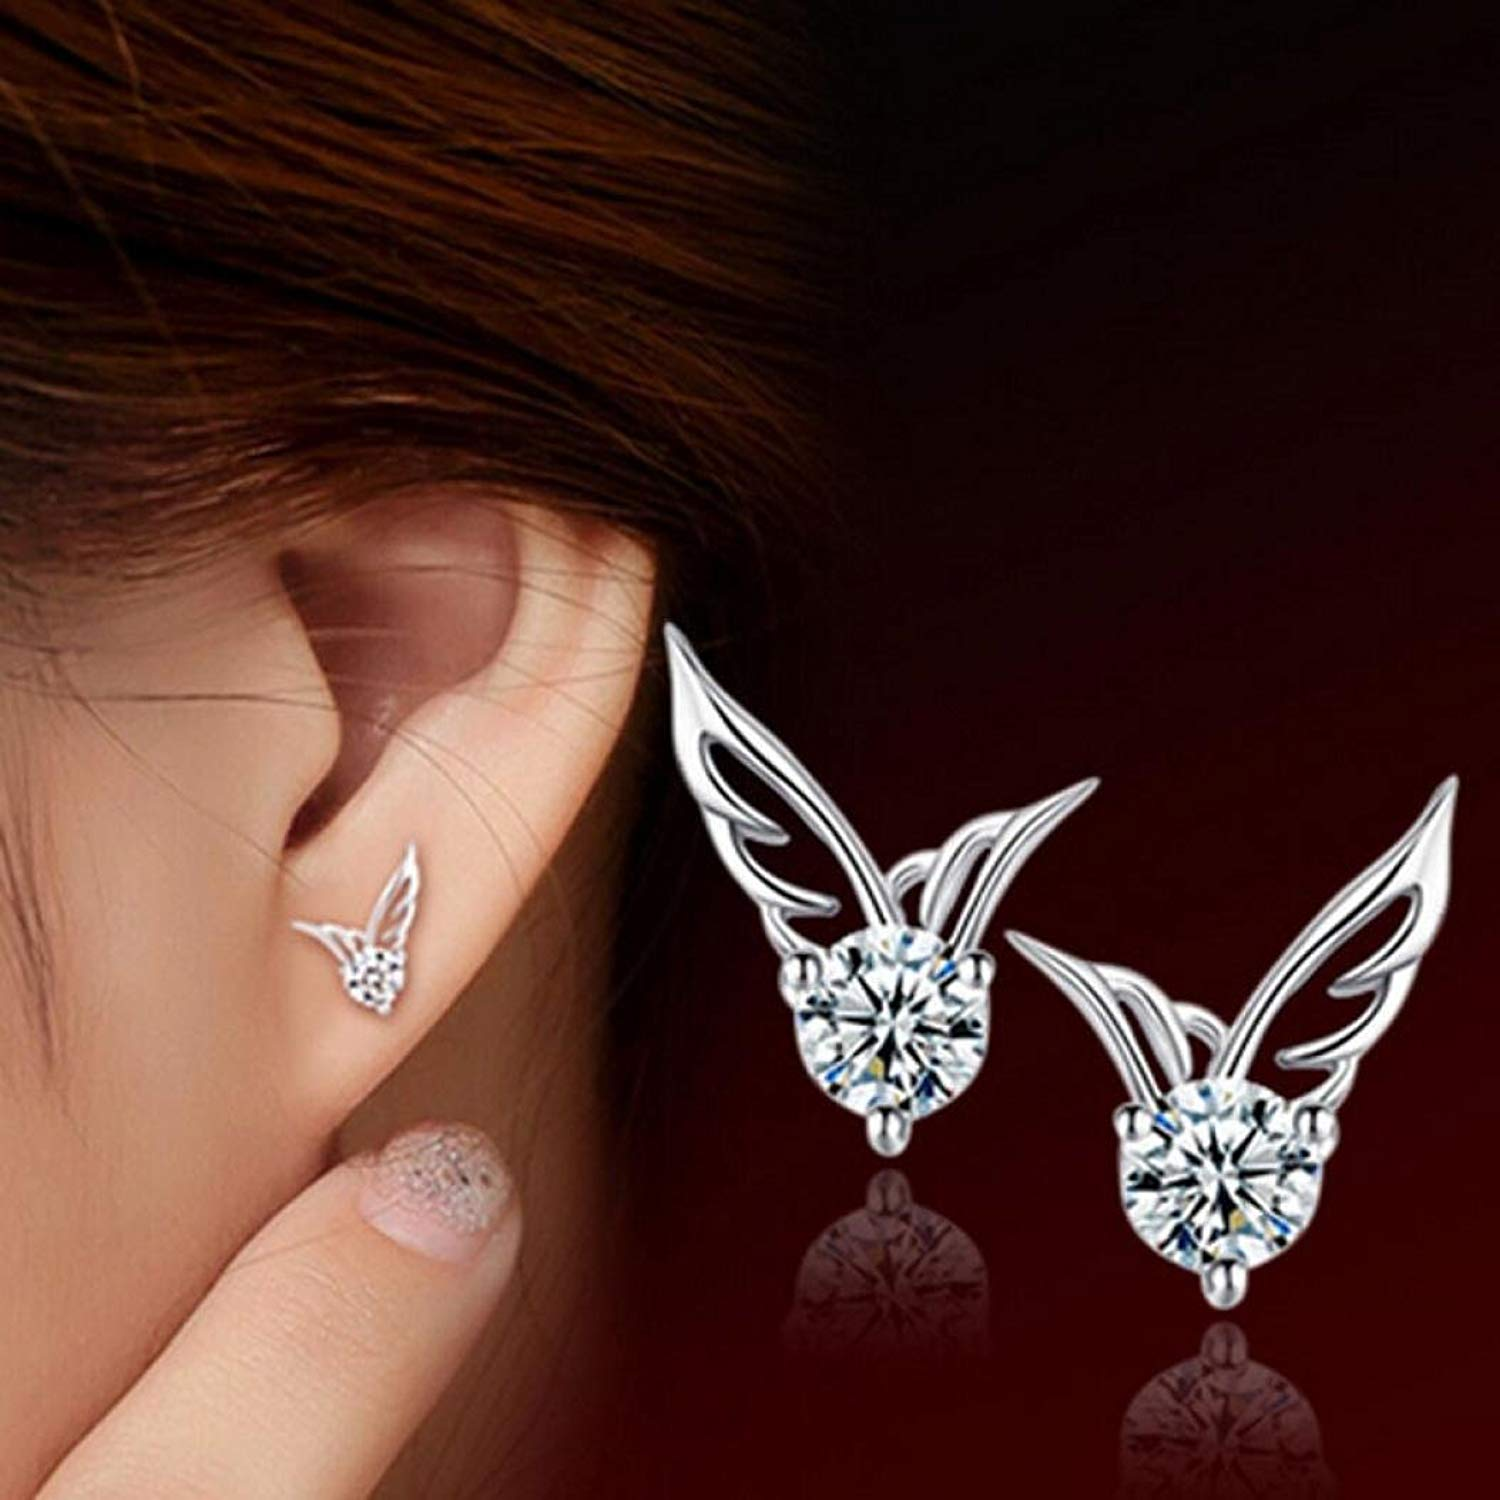 Gyoume 1Pair Stud Earrings Sterling Silver Angel Wings Earrings Ear Jewelry Gift for Women Girls